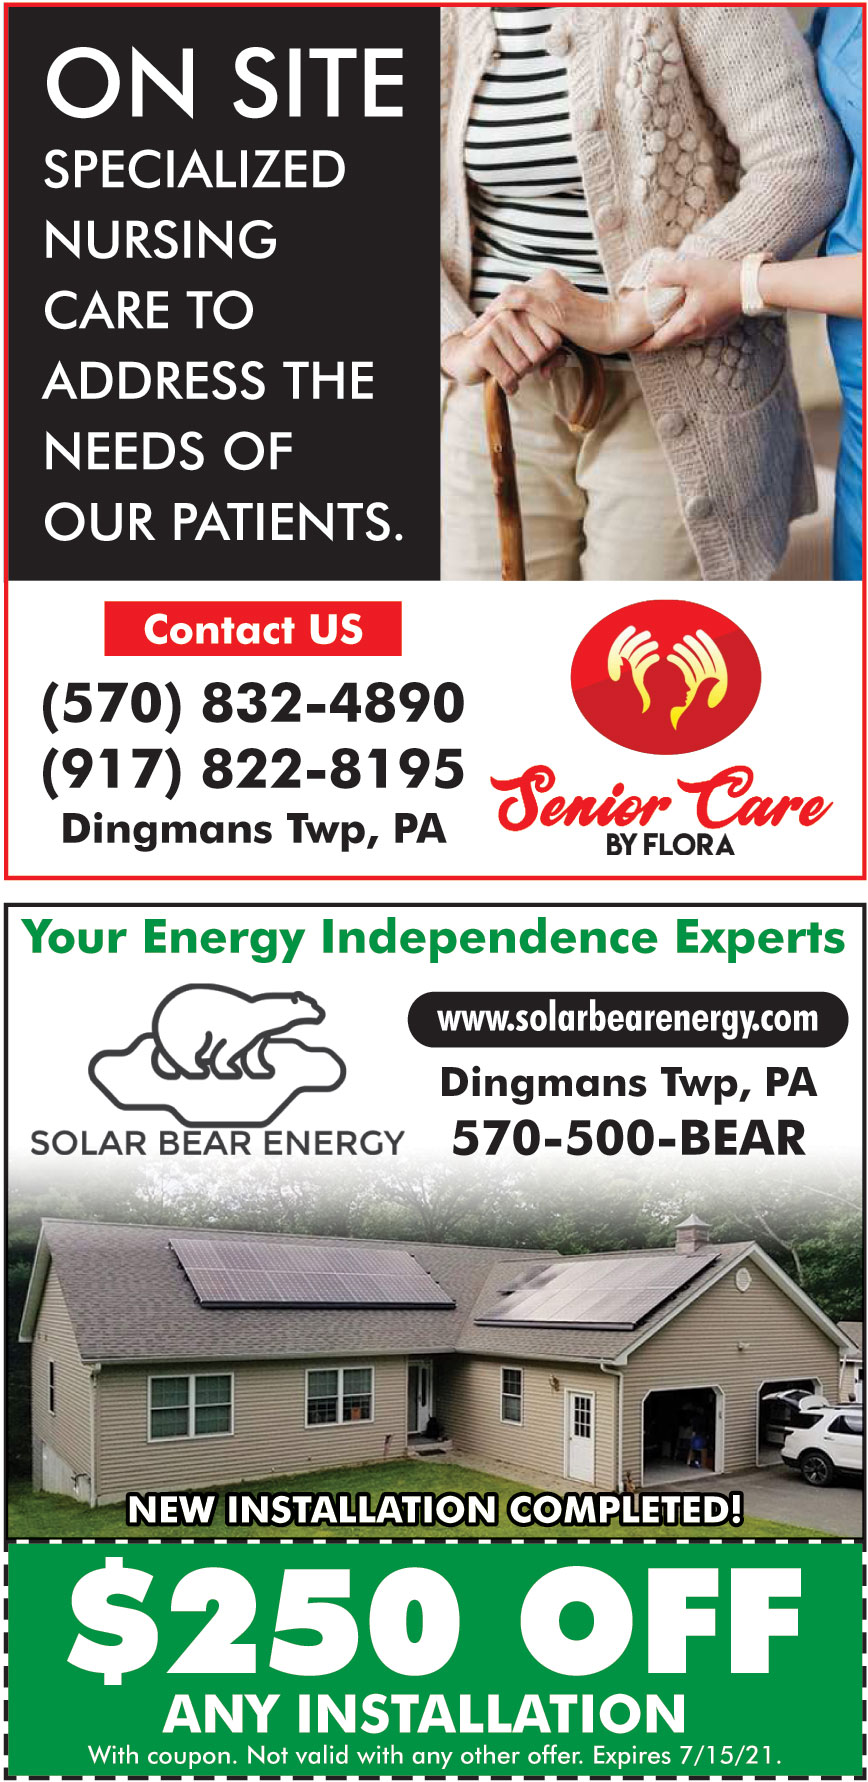 SOLAR BEAR ENERGY LLC